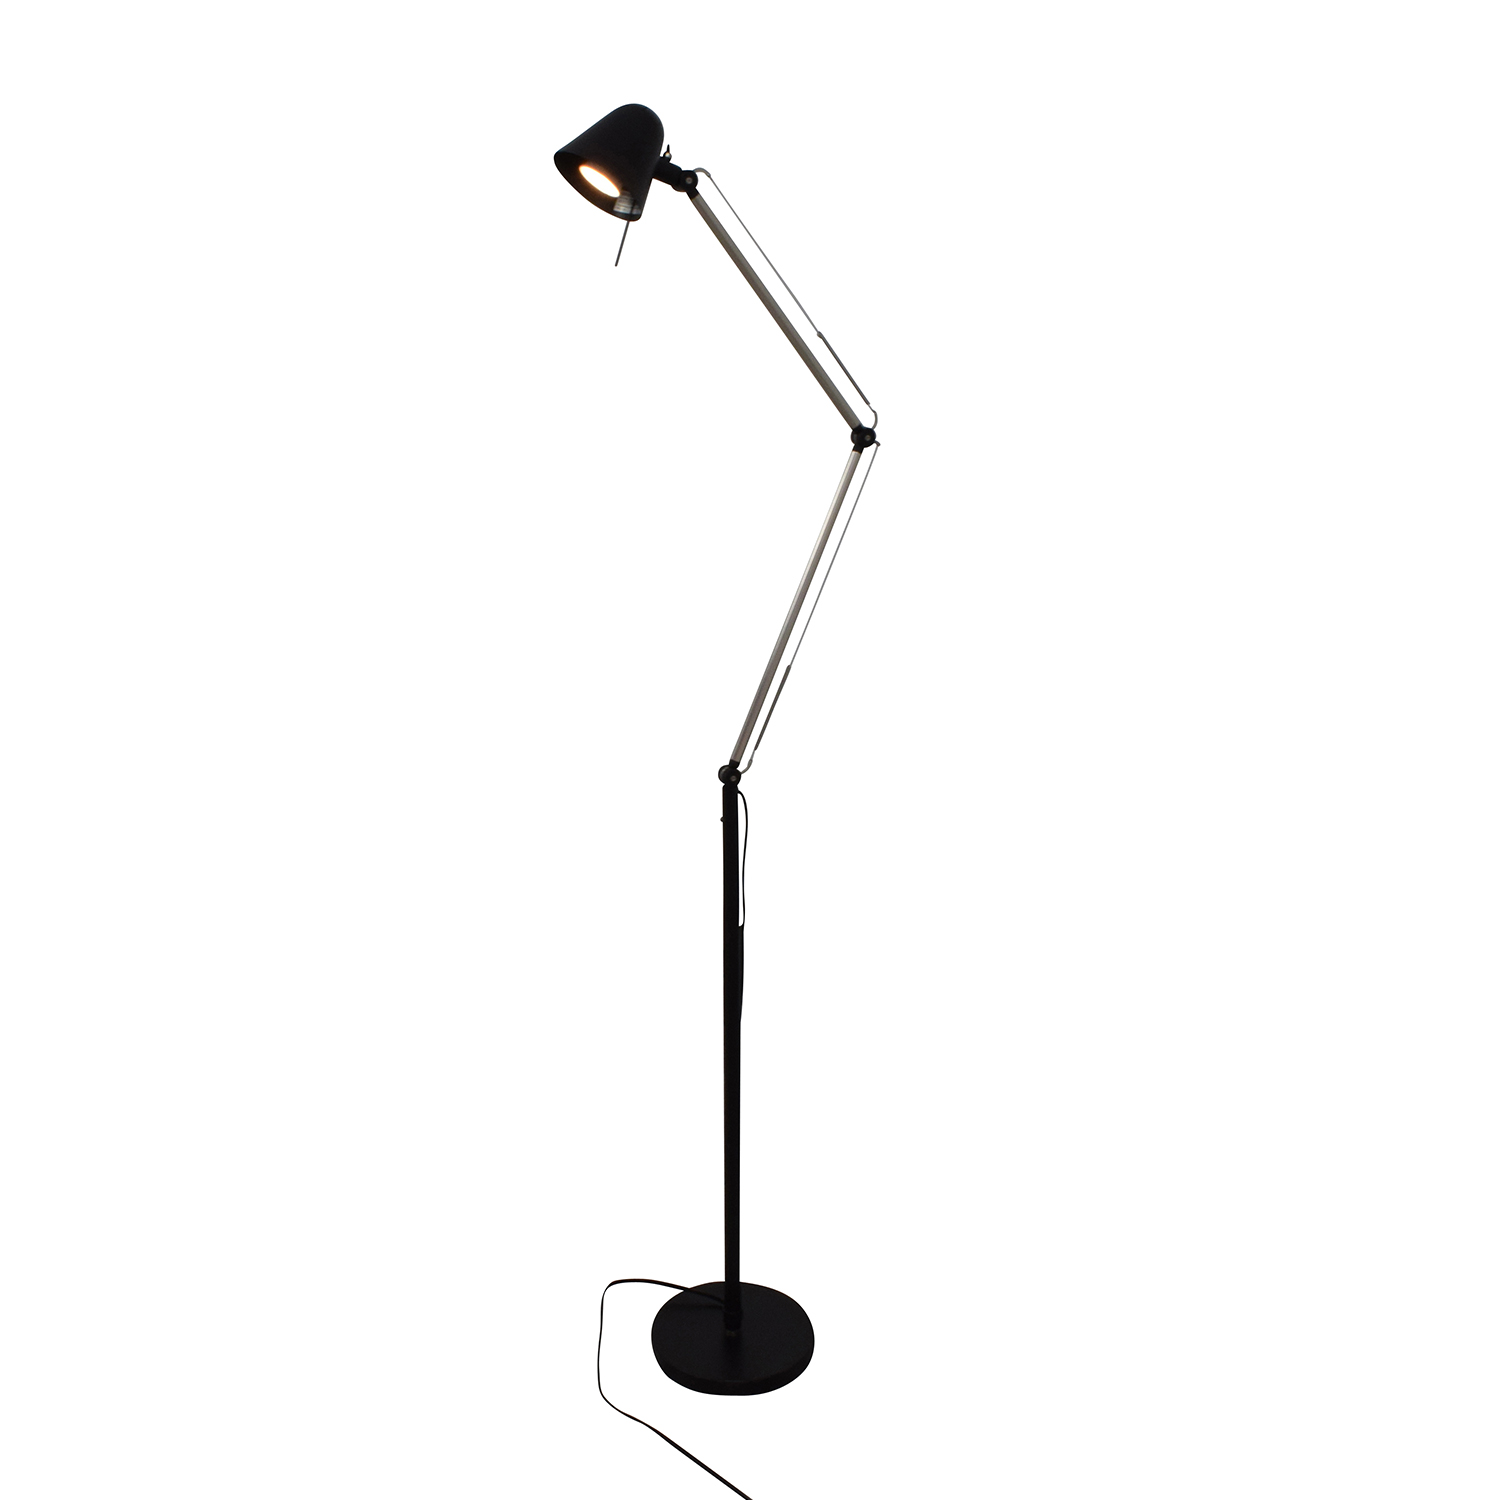 ikea floor lighting. IKEA UPPBO Black And Chrome Task Floor Lamp Used Ikea Lighting E